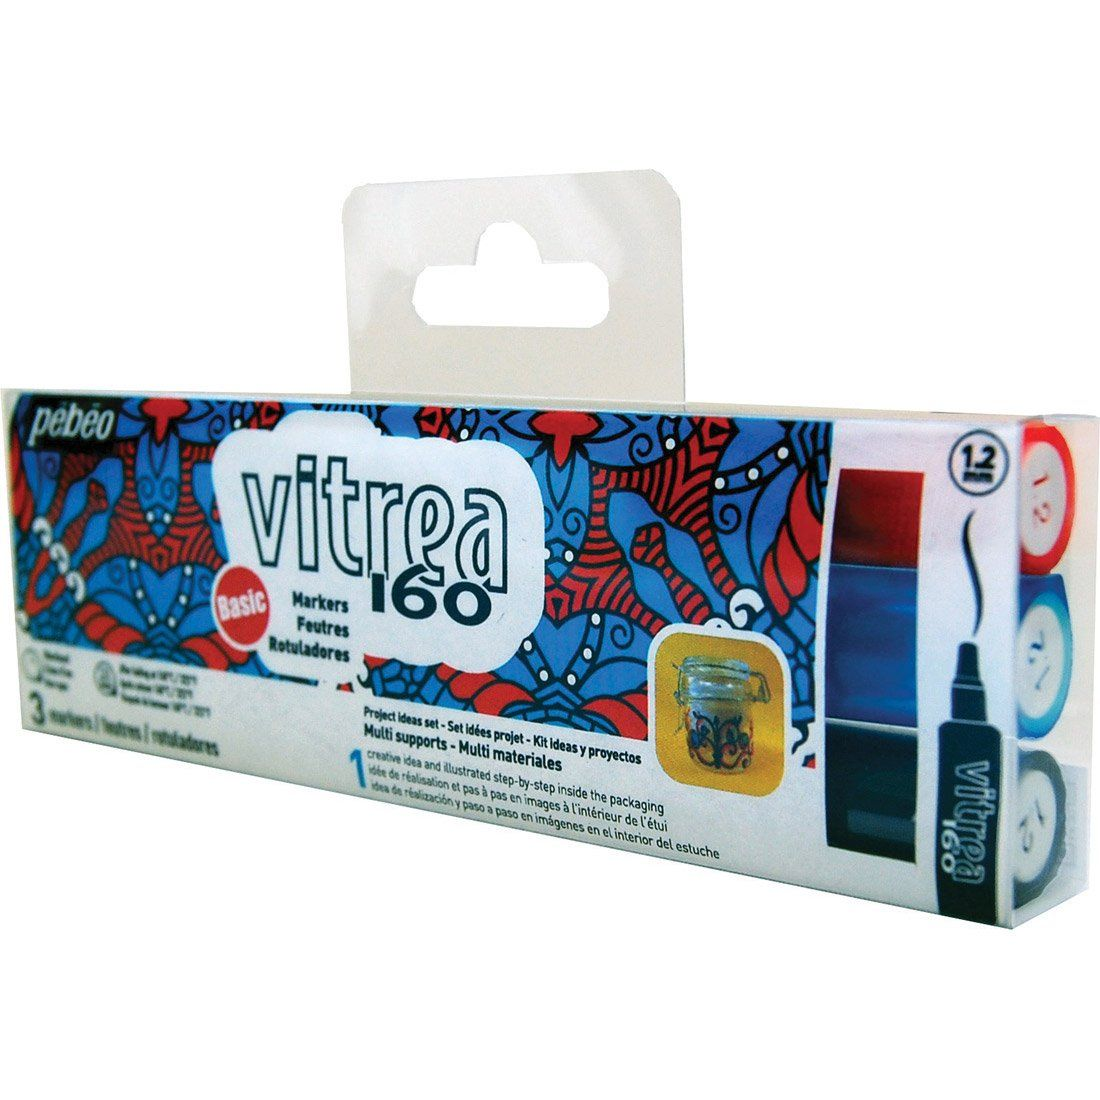 Pébéo Vitrea 160 Marker Set 3 glossy bullet markers - Ink Black, Turquoise, Pepper Red & Project ideas.